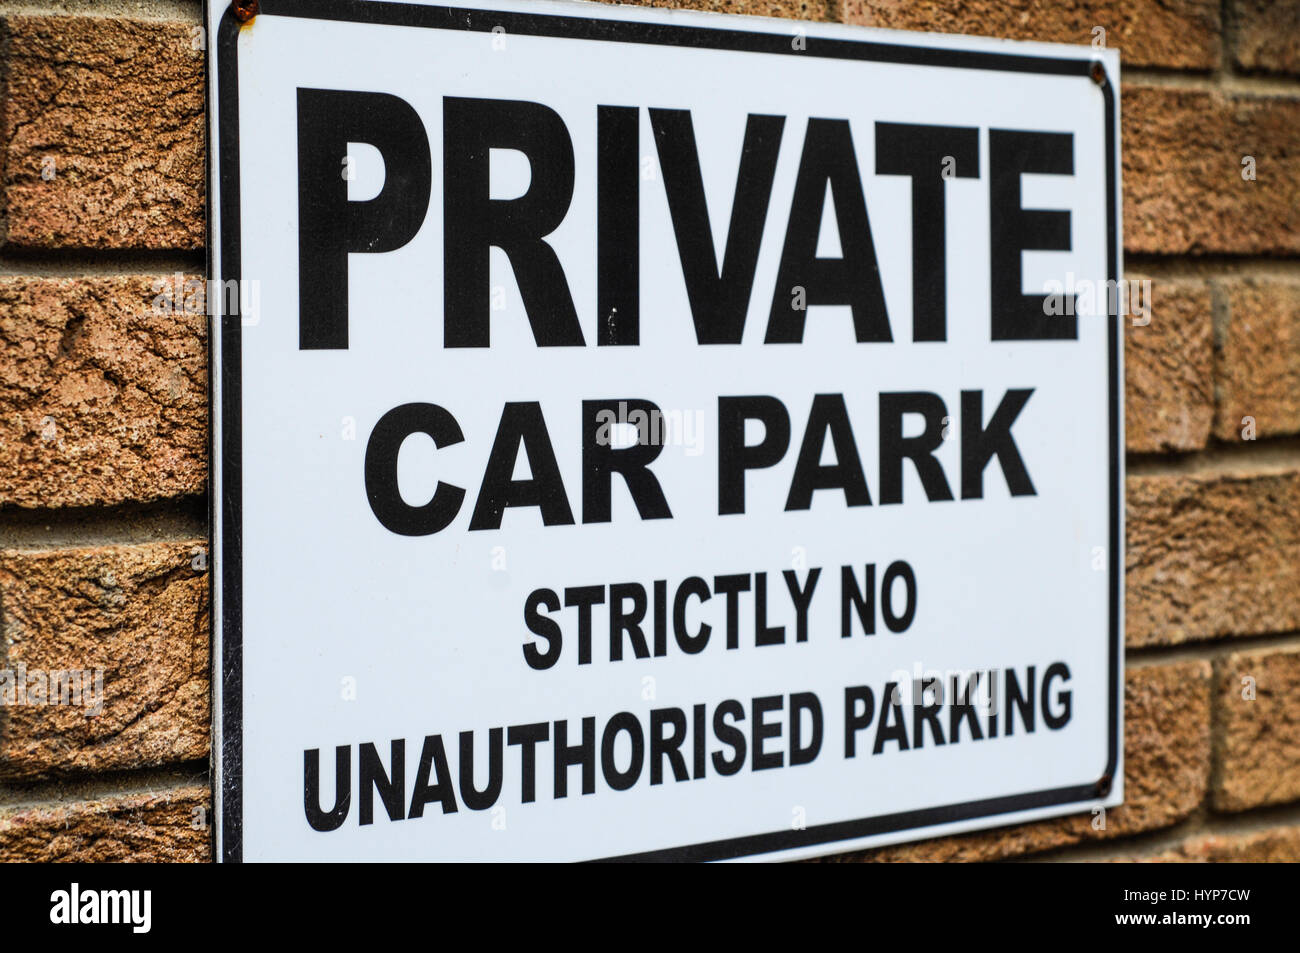 Private car park sign in cambridge England UK - Stock Image